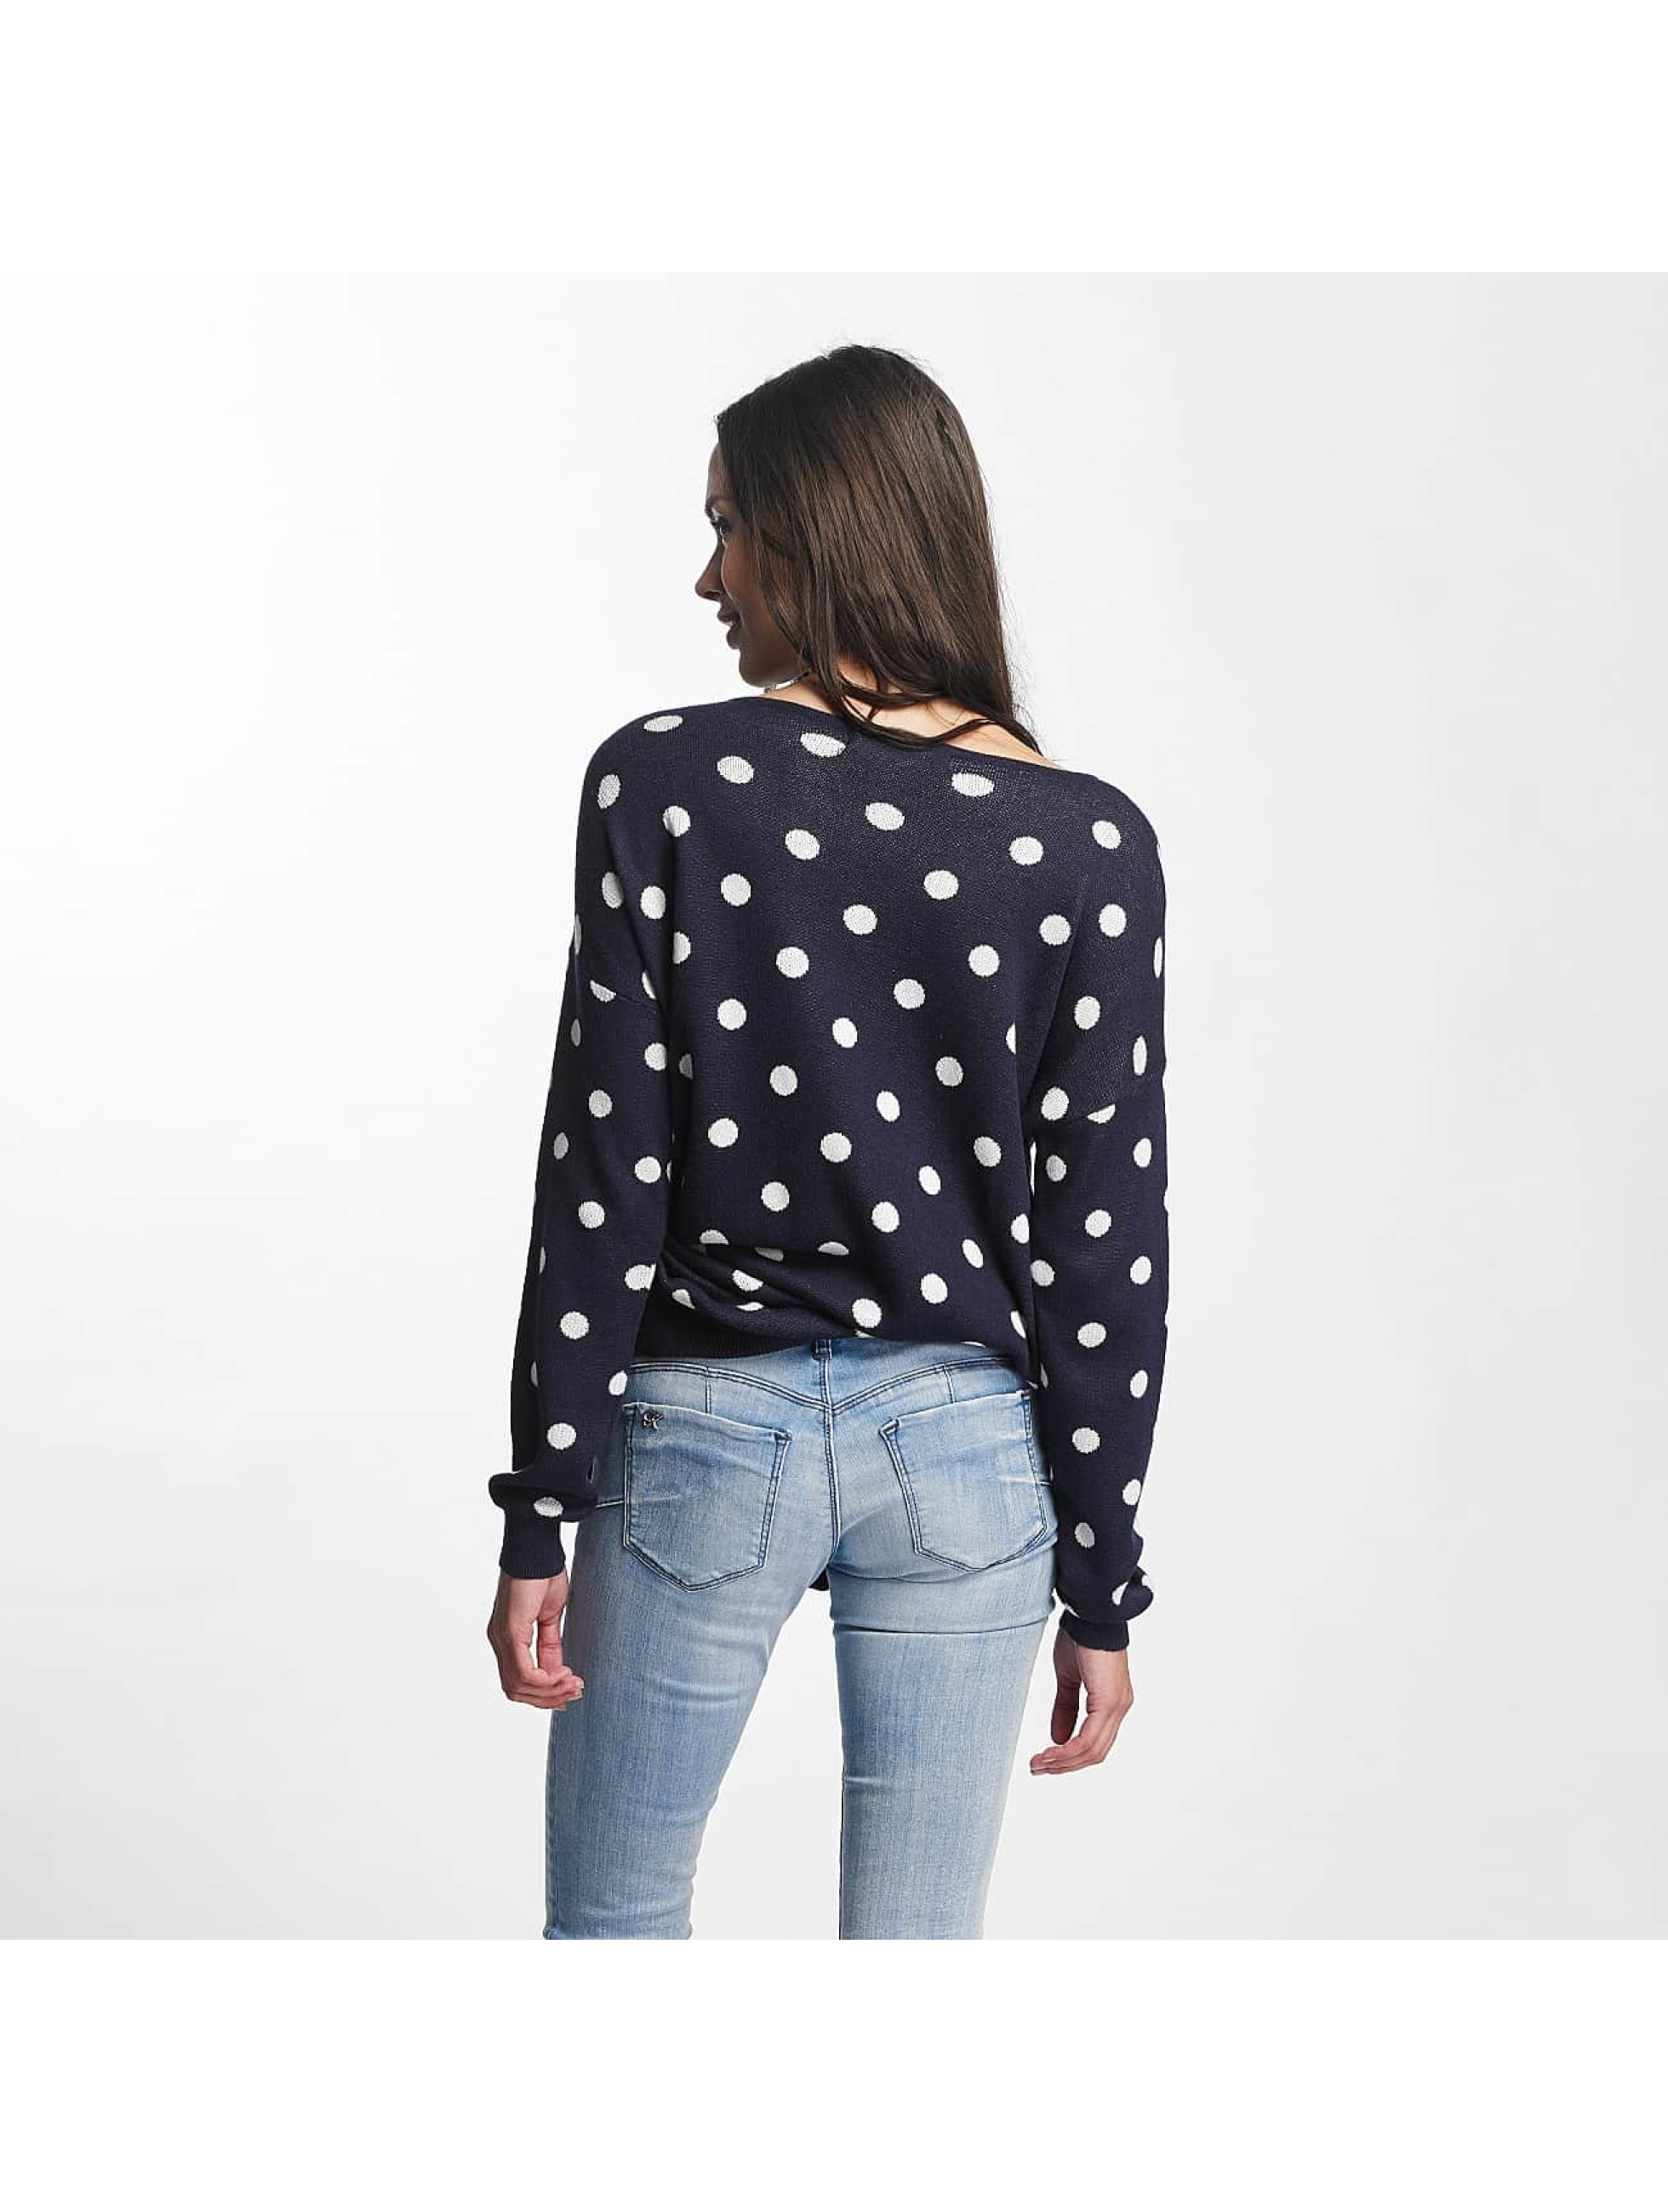 vero moda damen oberteile pullover vmdotty oversize ebay. Black Bedroom Furniture Sets. Home Design Ideas